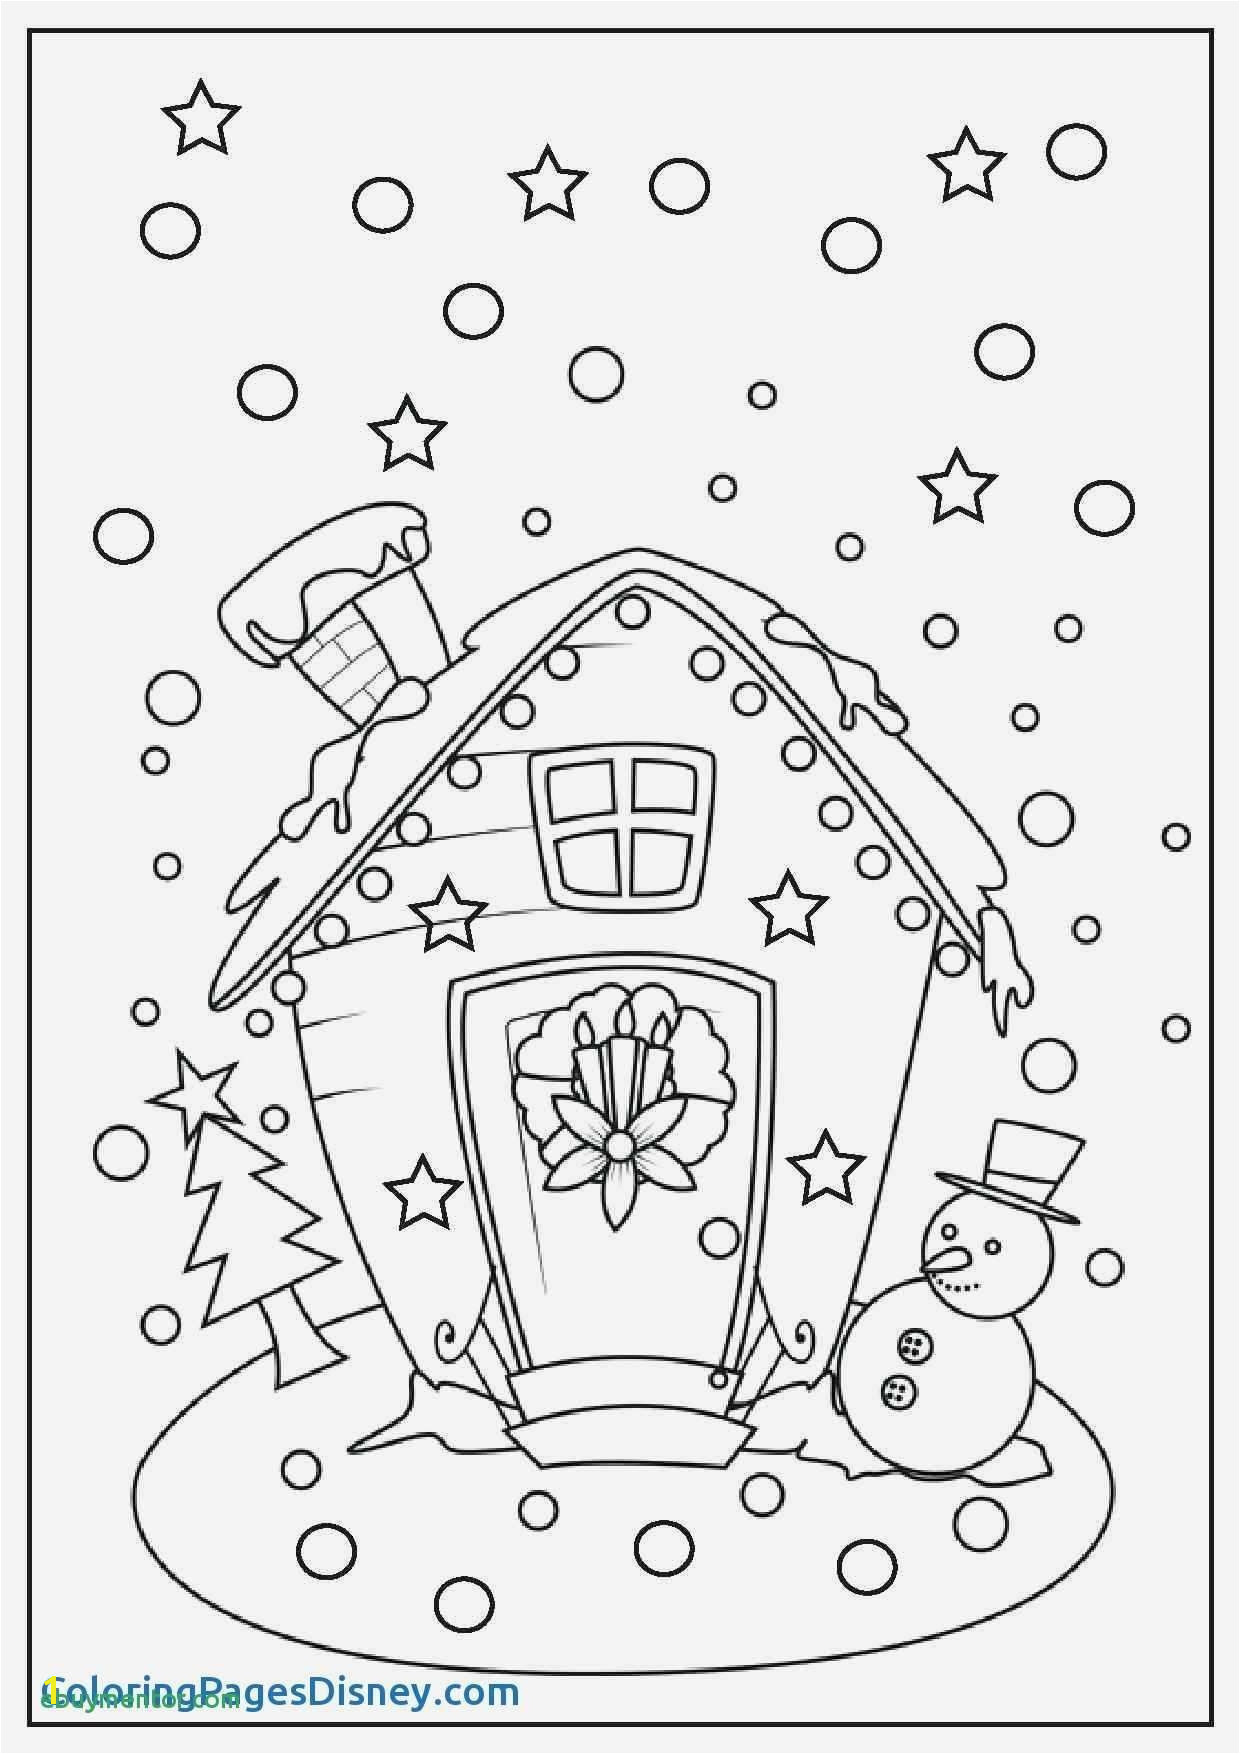 Christmas Card Coloring Pages Holiday Coloring Pages for Preschool Christmas Card Printable